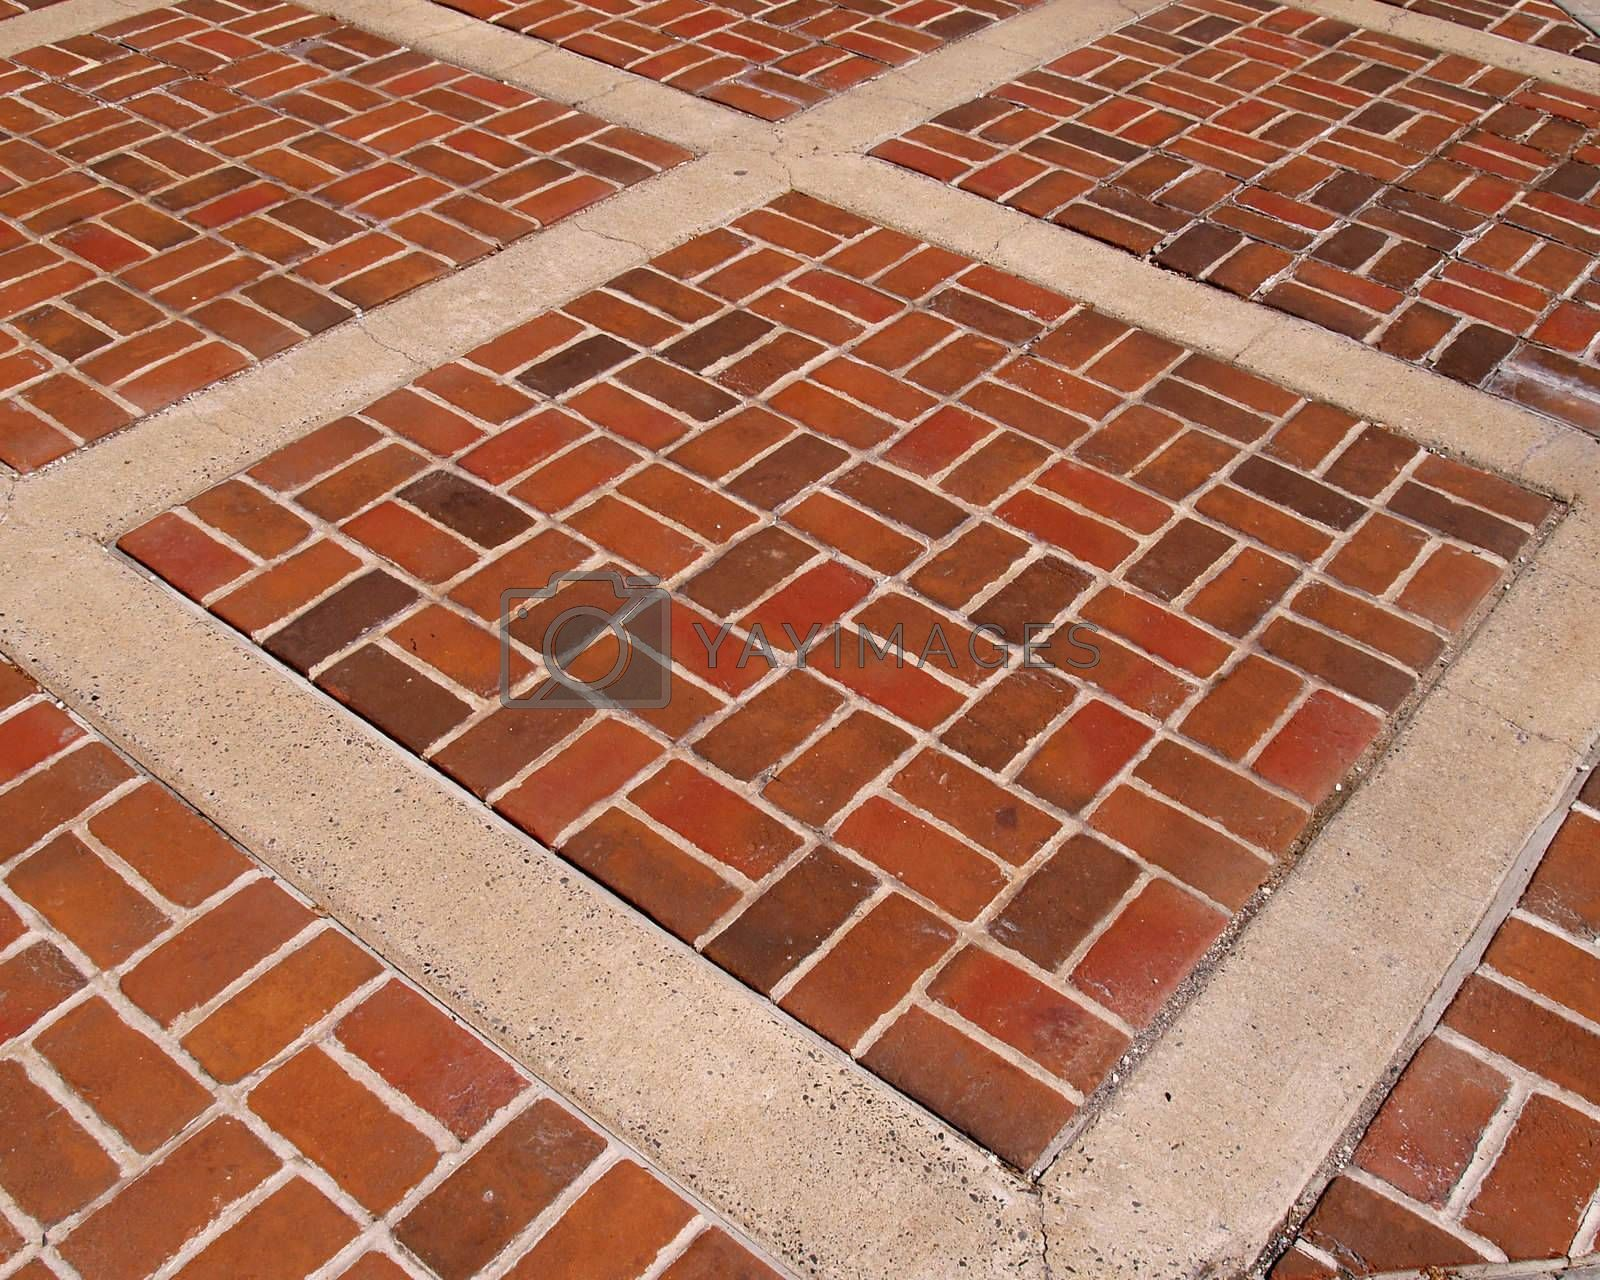 an abstract view of a brick patterned sidewalk